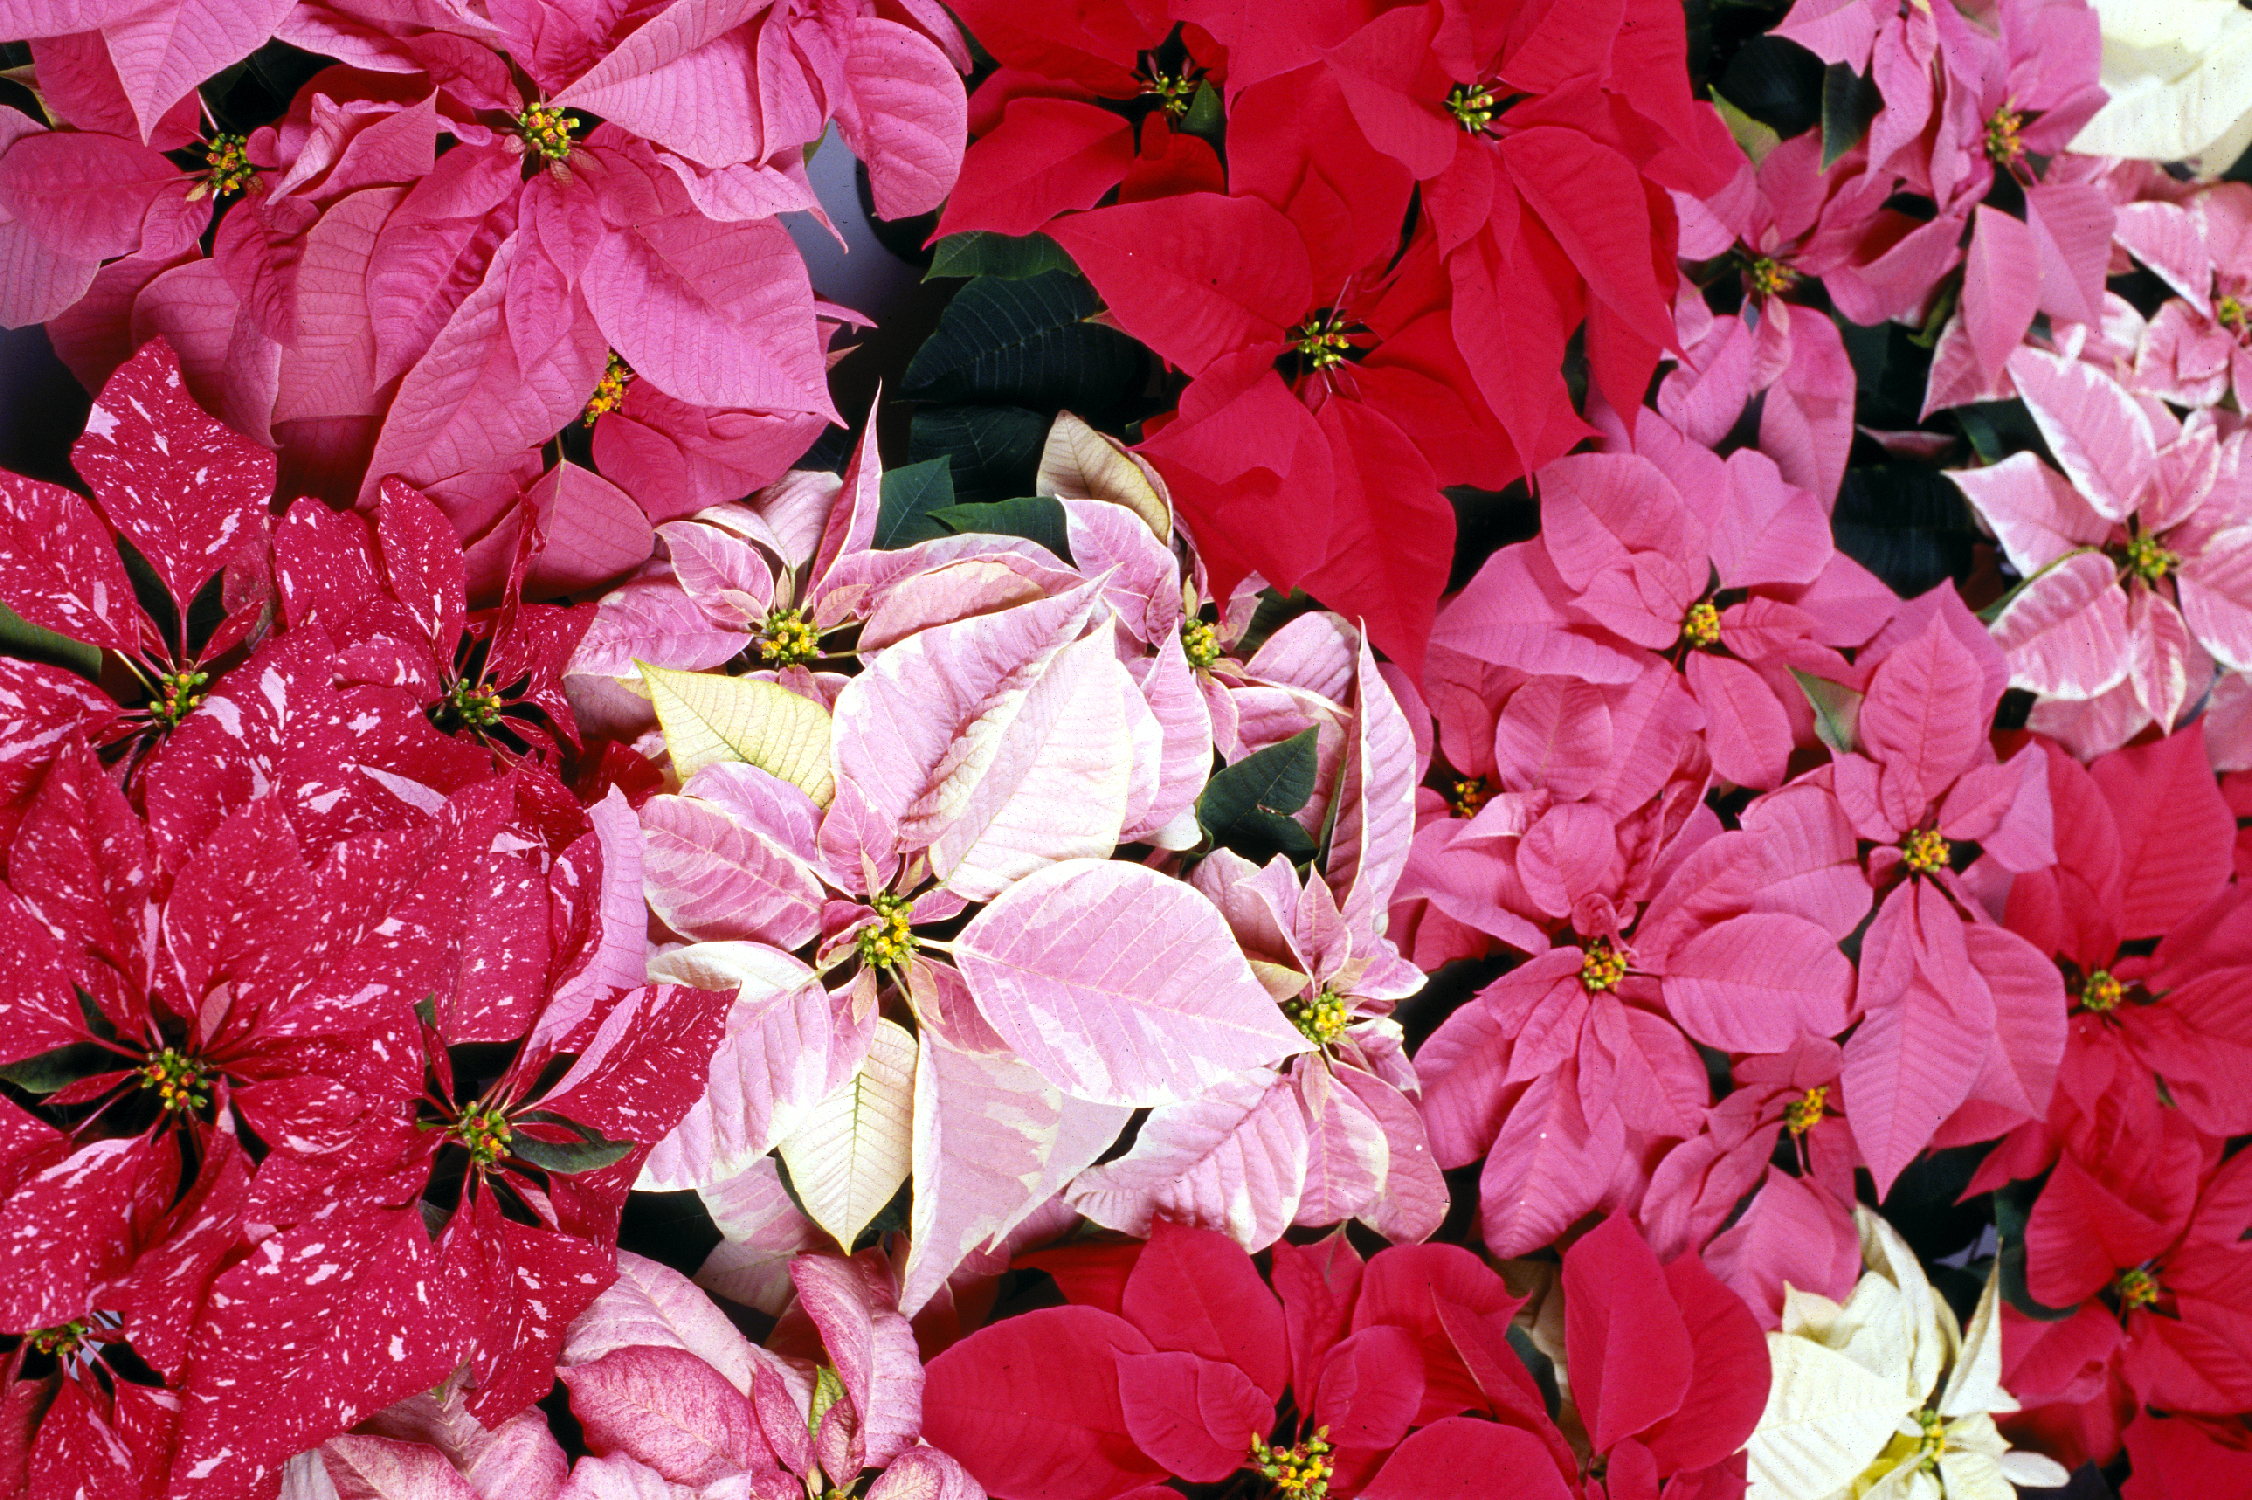 LSU AgCenter poinsettia show set for Dec. 1 in Baton Rouge